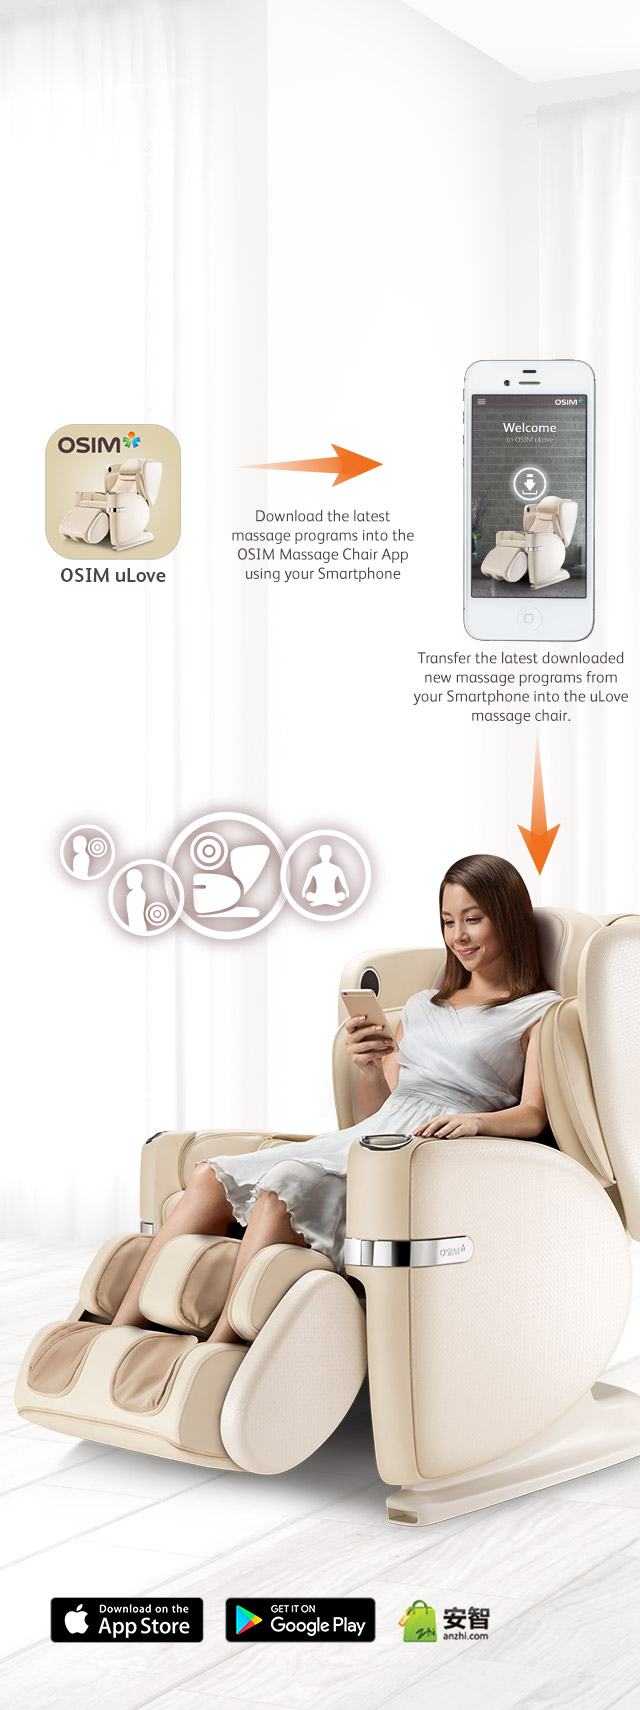 Ulove Massage Chair Download App Programs Mobile